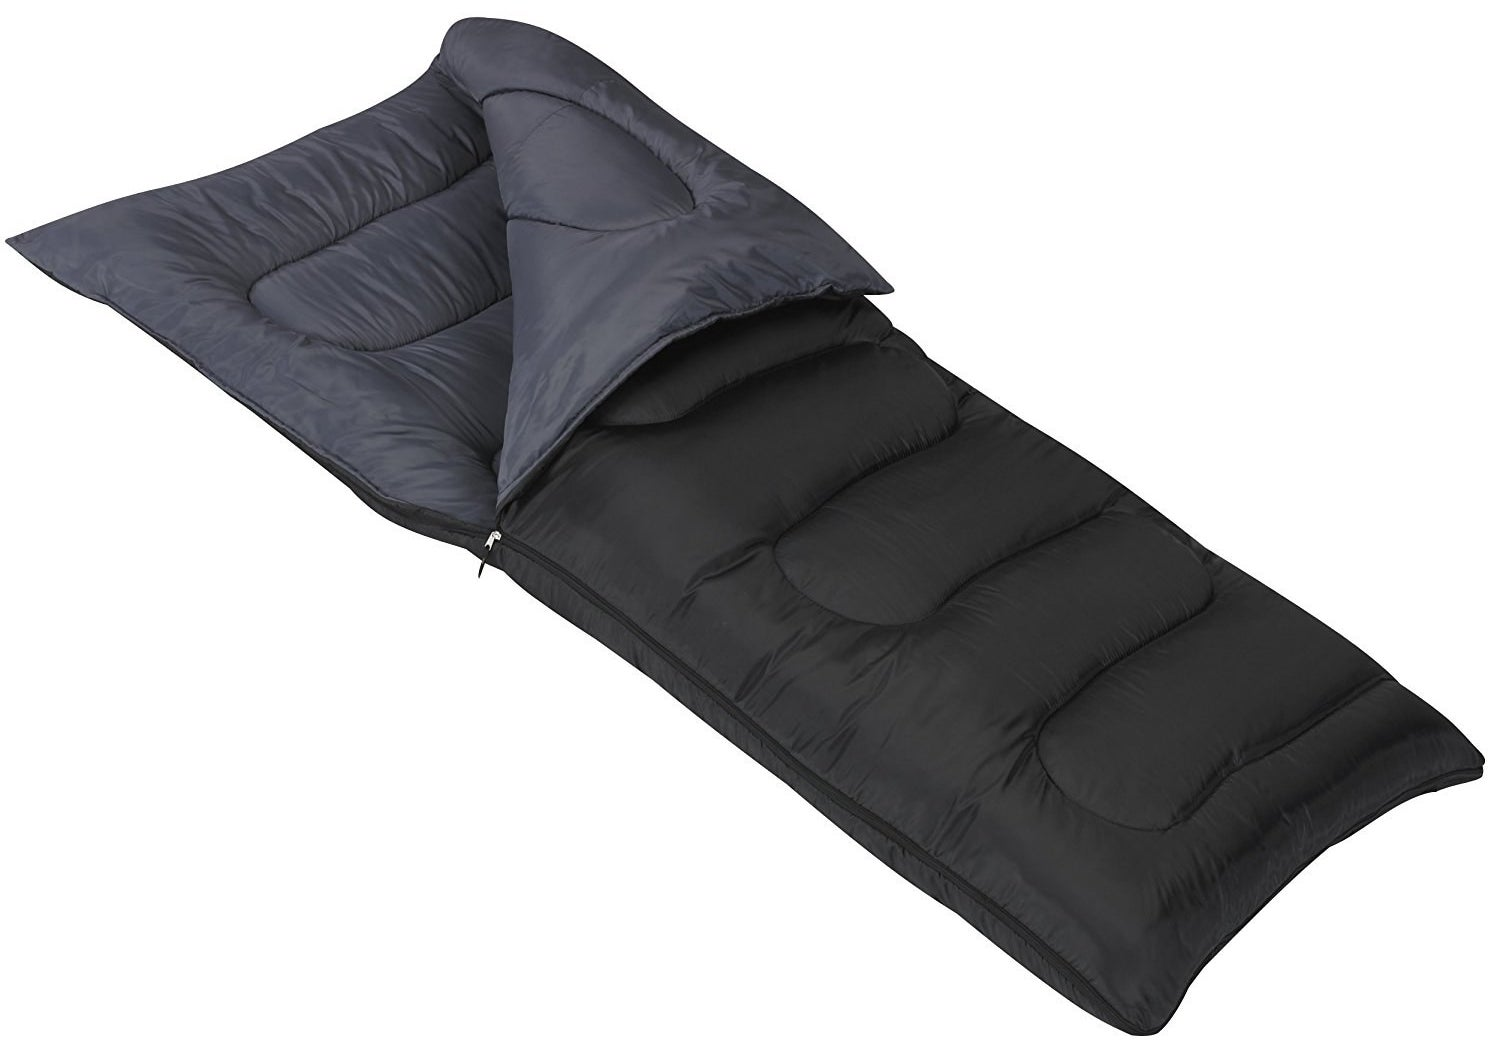 "This 25°F sleeping bag opens up to 81""x38"" and weighs 5 lbs. It can be unzipped all the way and used as a blanket. There are plastic roll straps for storage and transport.Promising review: ""I am 6'3"" and 350 pounds. I slept in this on a night that it was 40 degrees and was plenty warm in sleep shorts. It is BIG, so may not be the best option if you are taking it hiking, but for the price, you cannot beat this sleeping bag for warmth and size."" —James F.Price: $32.39"